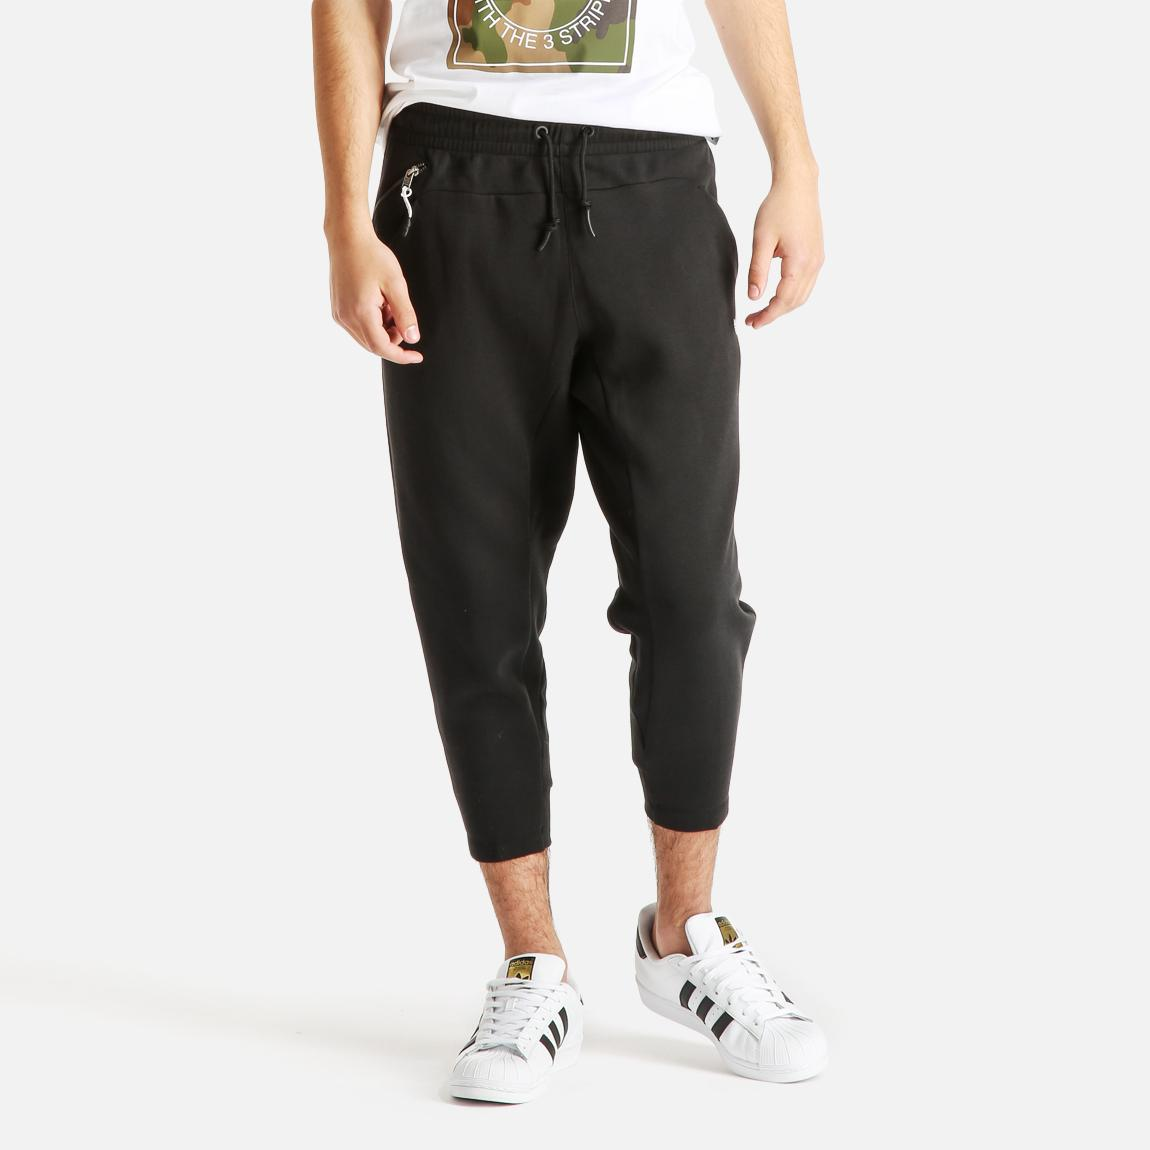 luxe 3 4 pants black adidas originals sweatpants. Black Bedroom Furniture Sets. Home Design Ideas